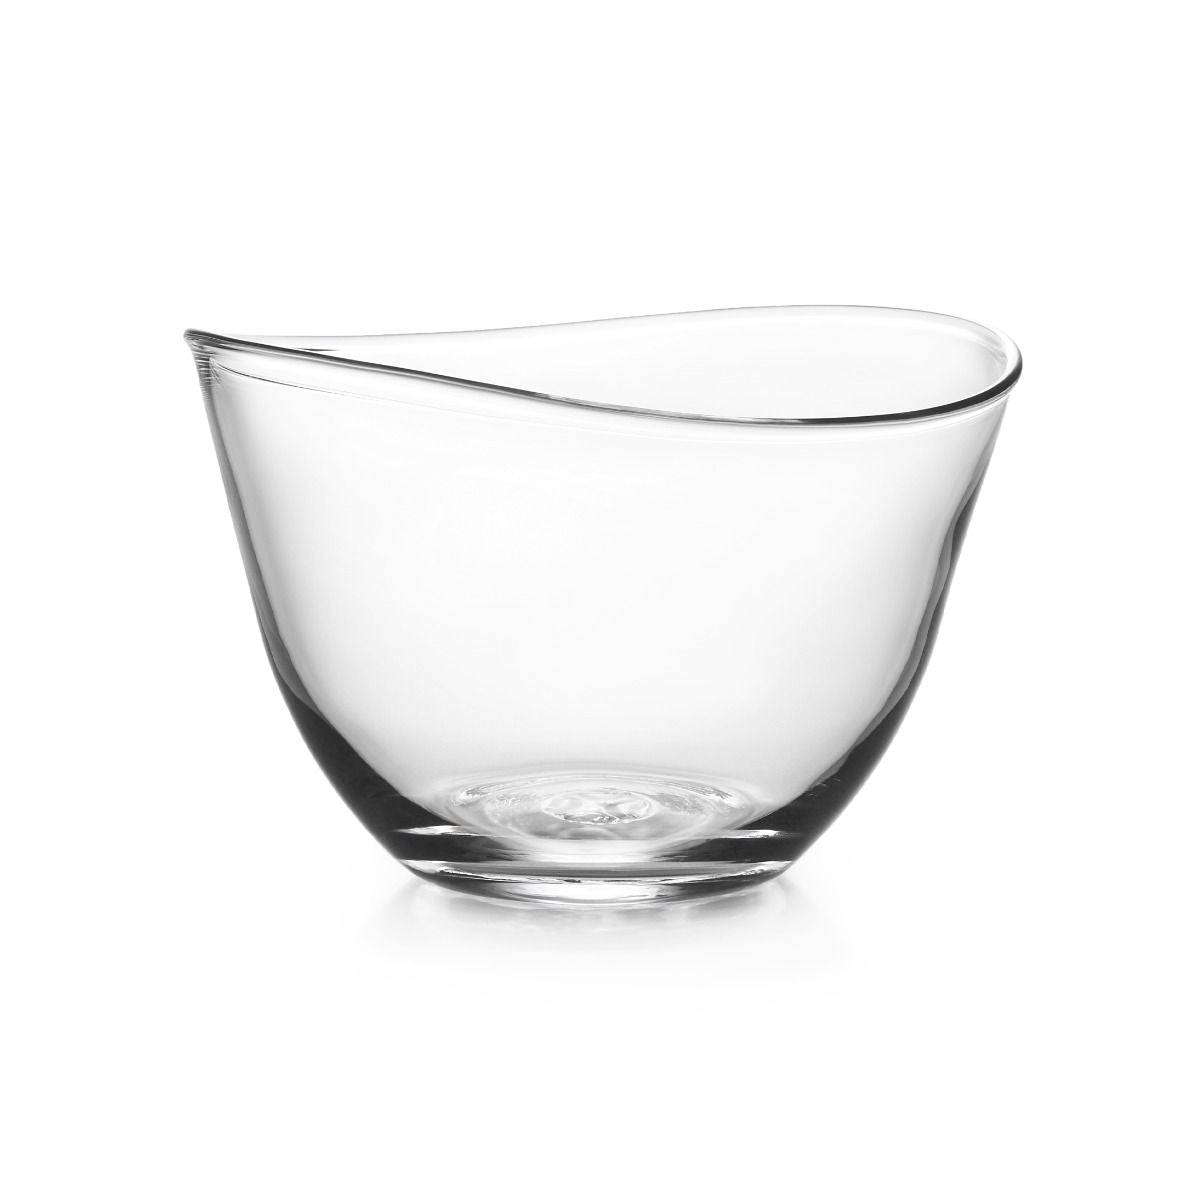 Simon Pearce Barre Bowl, Large